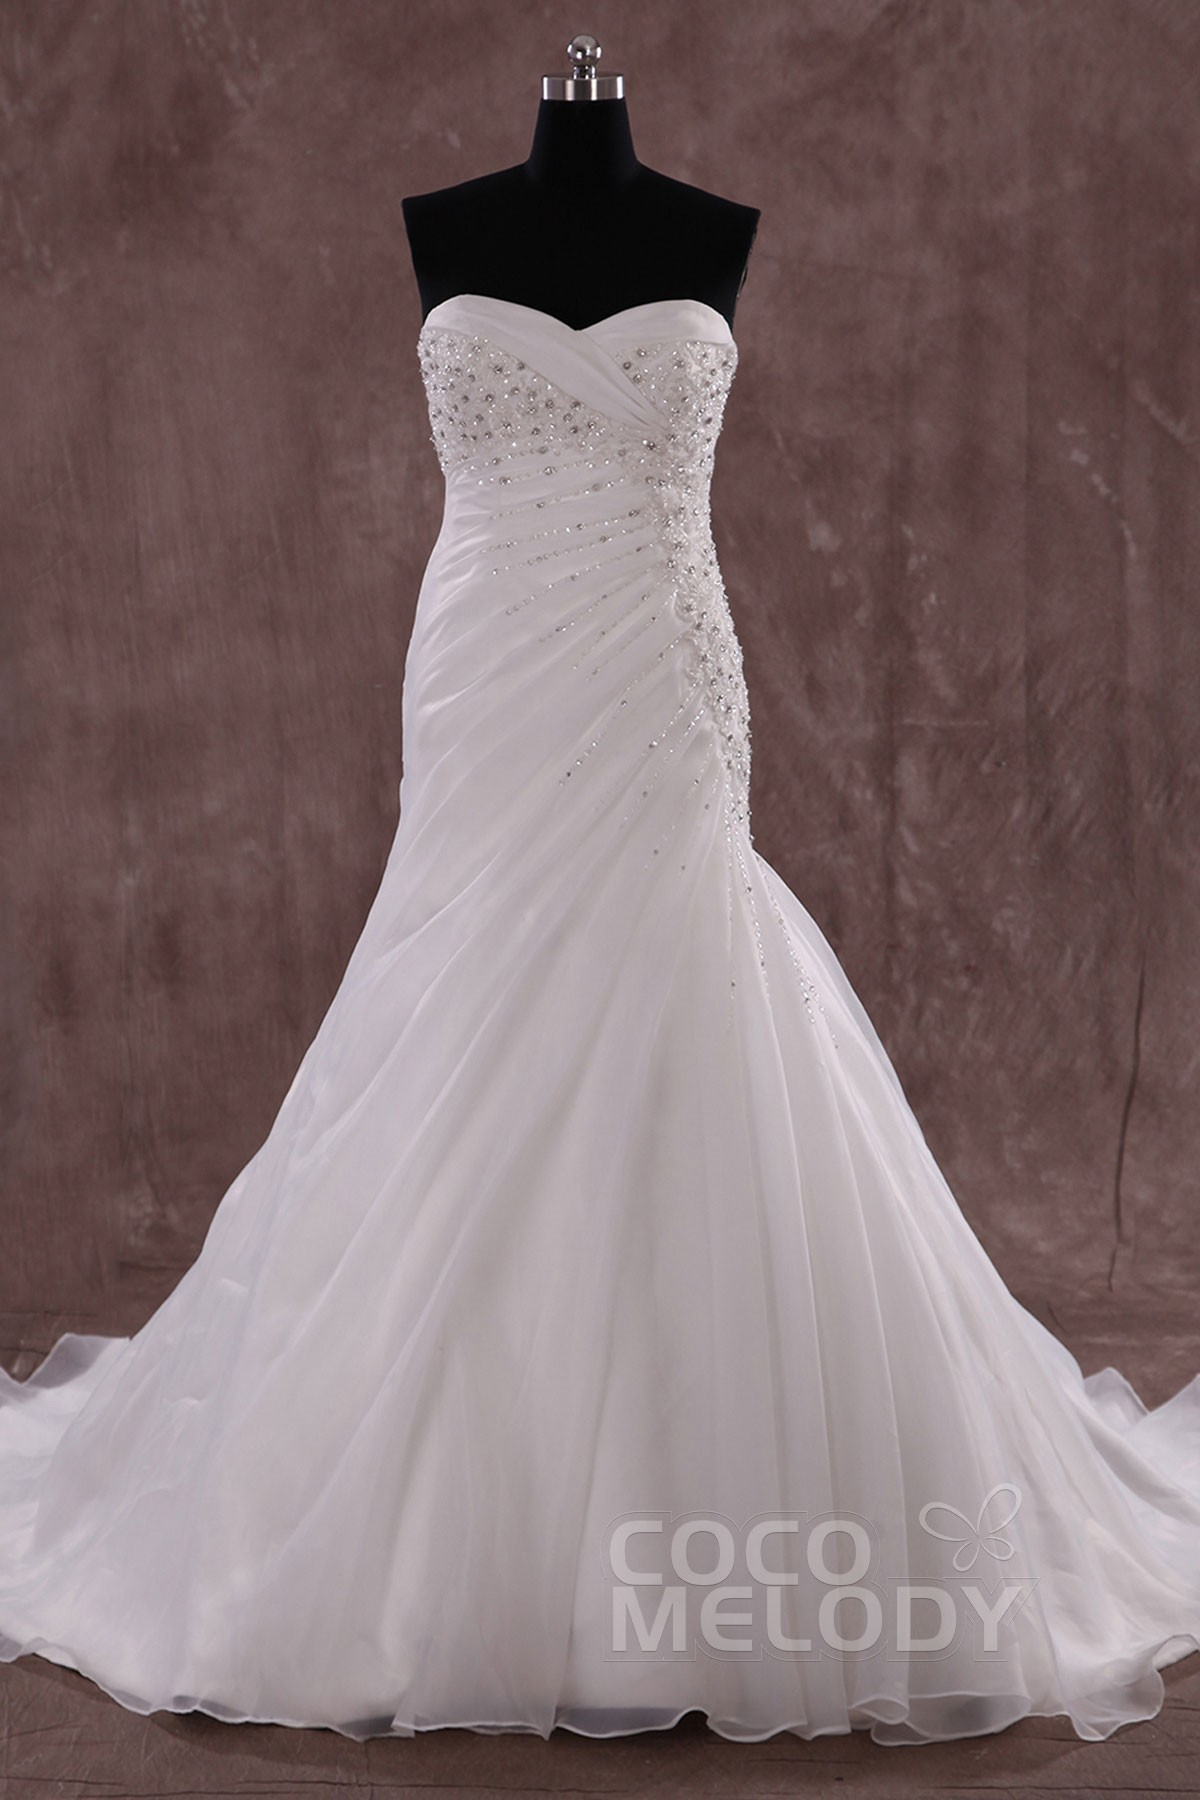 Glamour Trumpet-Mermaid Sweetheart Train Organza Ivory Sleeveless Wedding Dress with Beading and Crystal LWLT14062